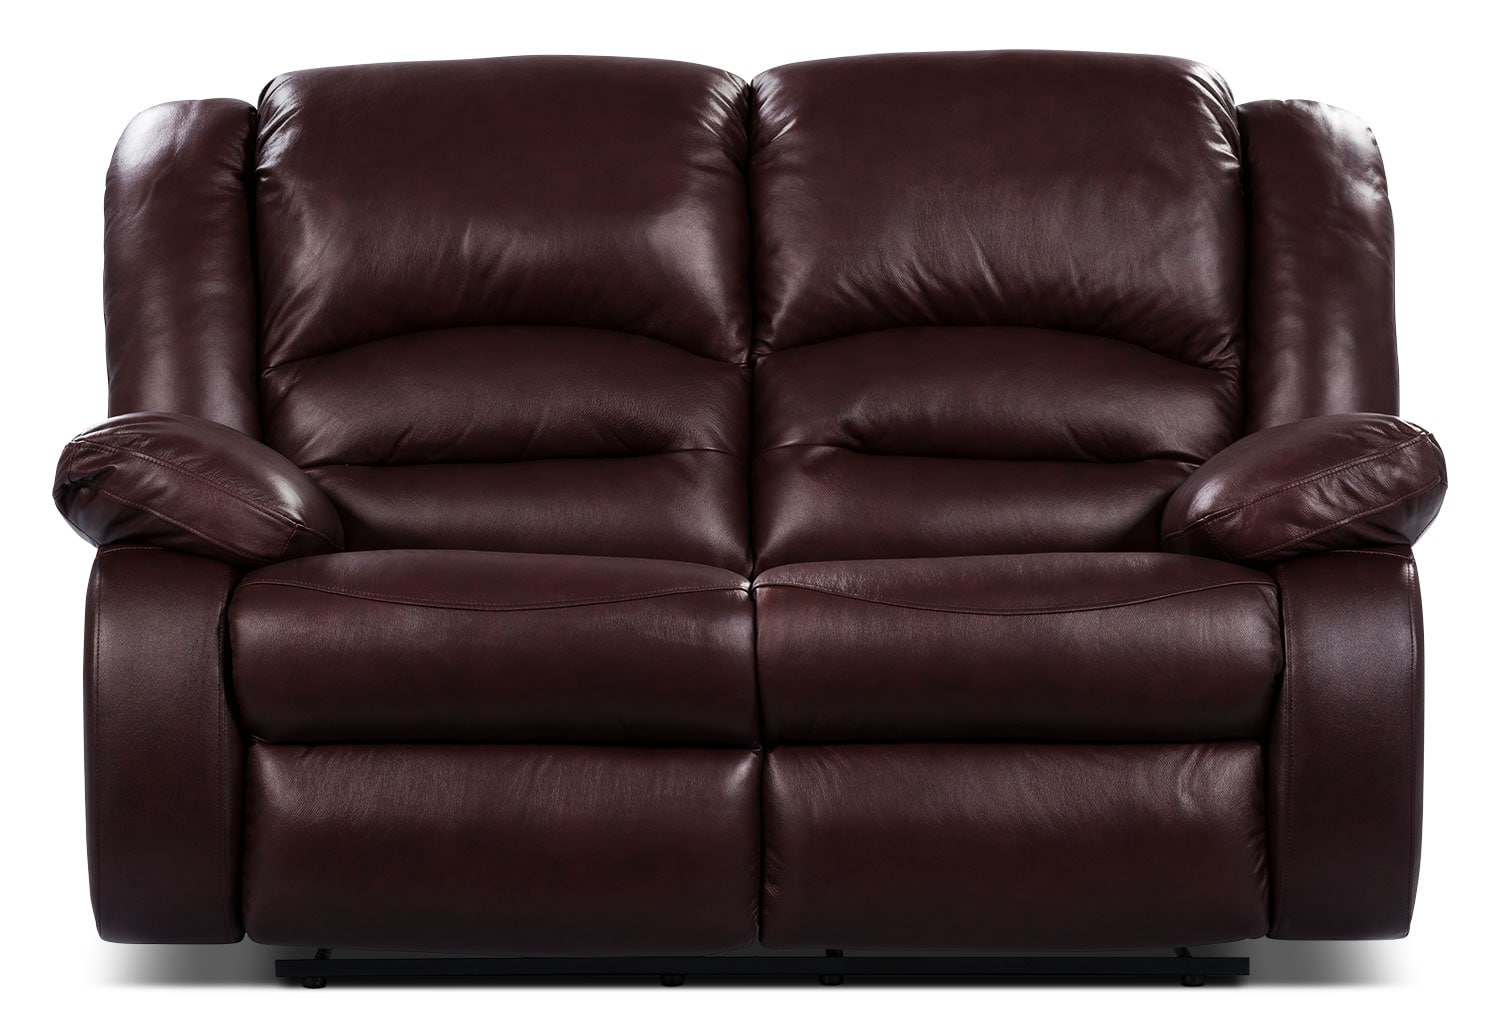 Toreno genuine leather reclining loveseat burgundy the brick Burgundy leather loveseat